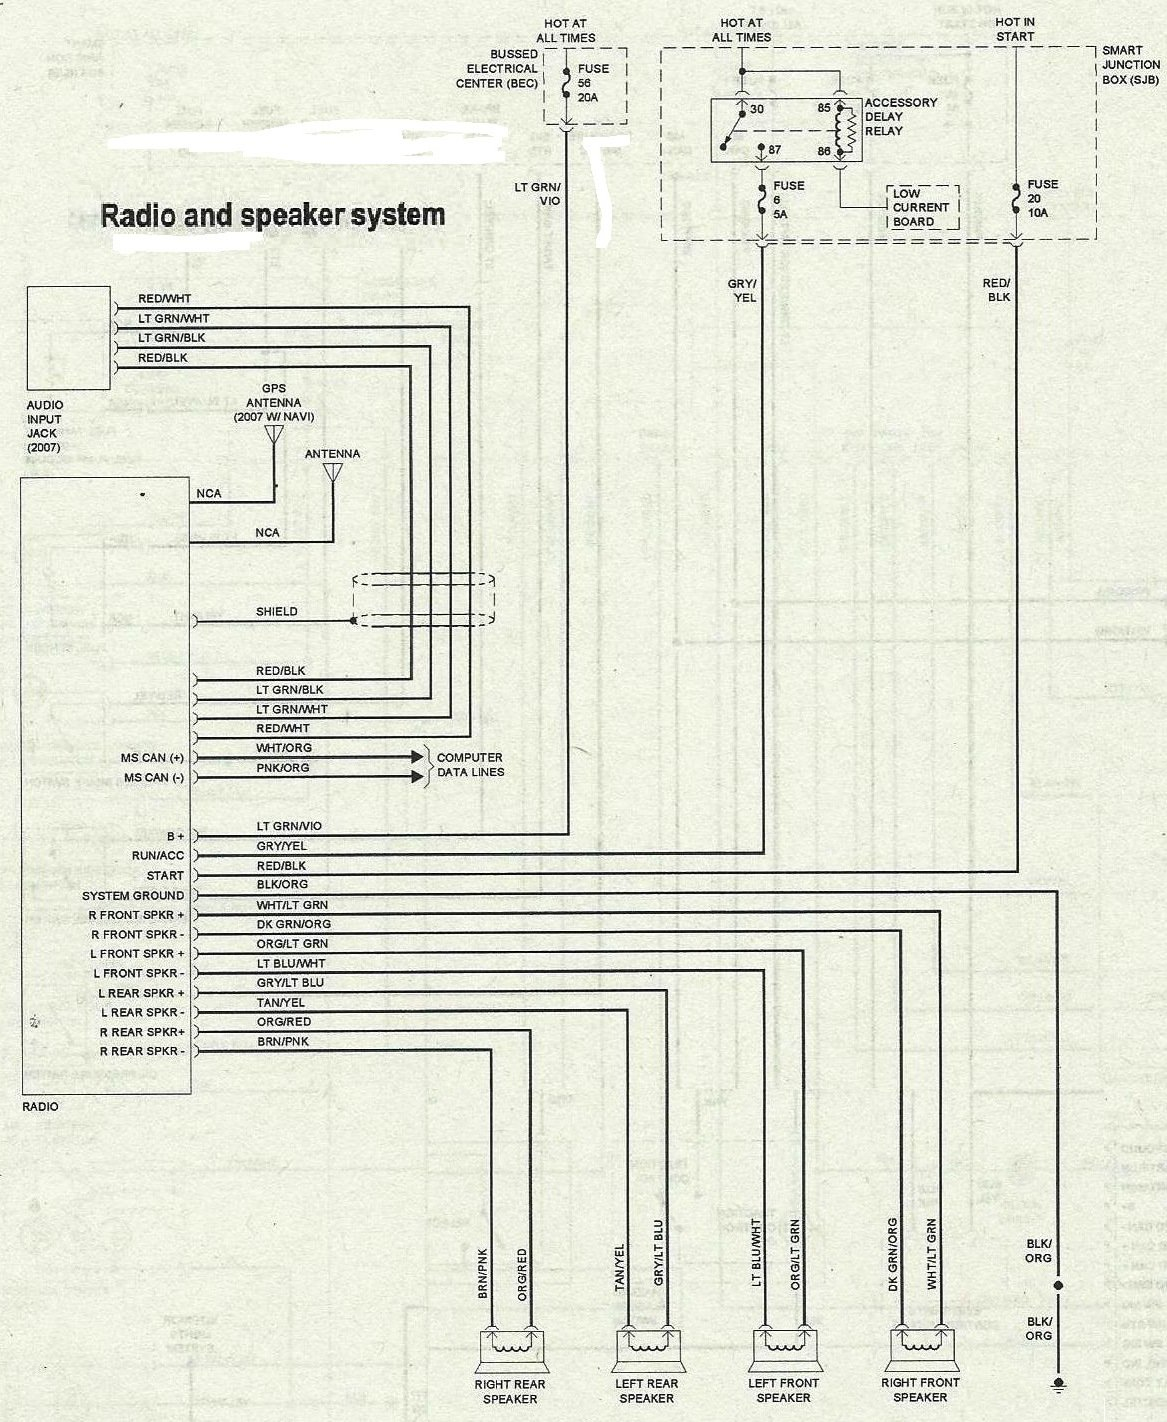 2007 mustang radio wiring diagram 2007 image ford mustang shaker 500 radio wiring diagram ford auto wiring on 2007 mustang radio wiring diagram